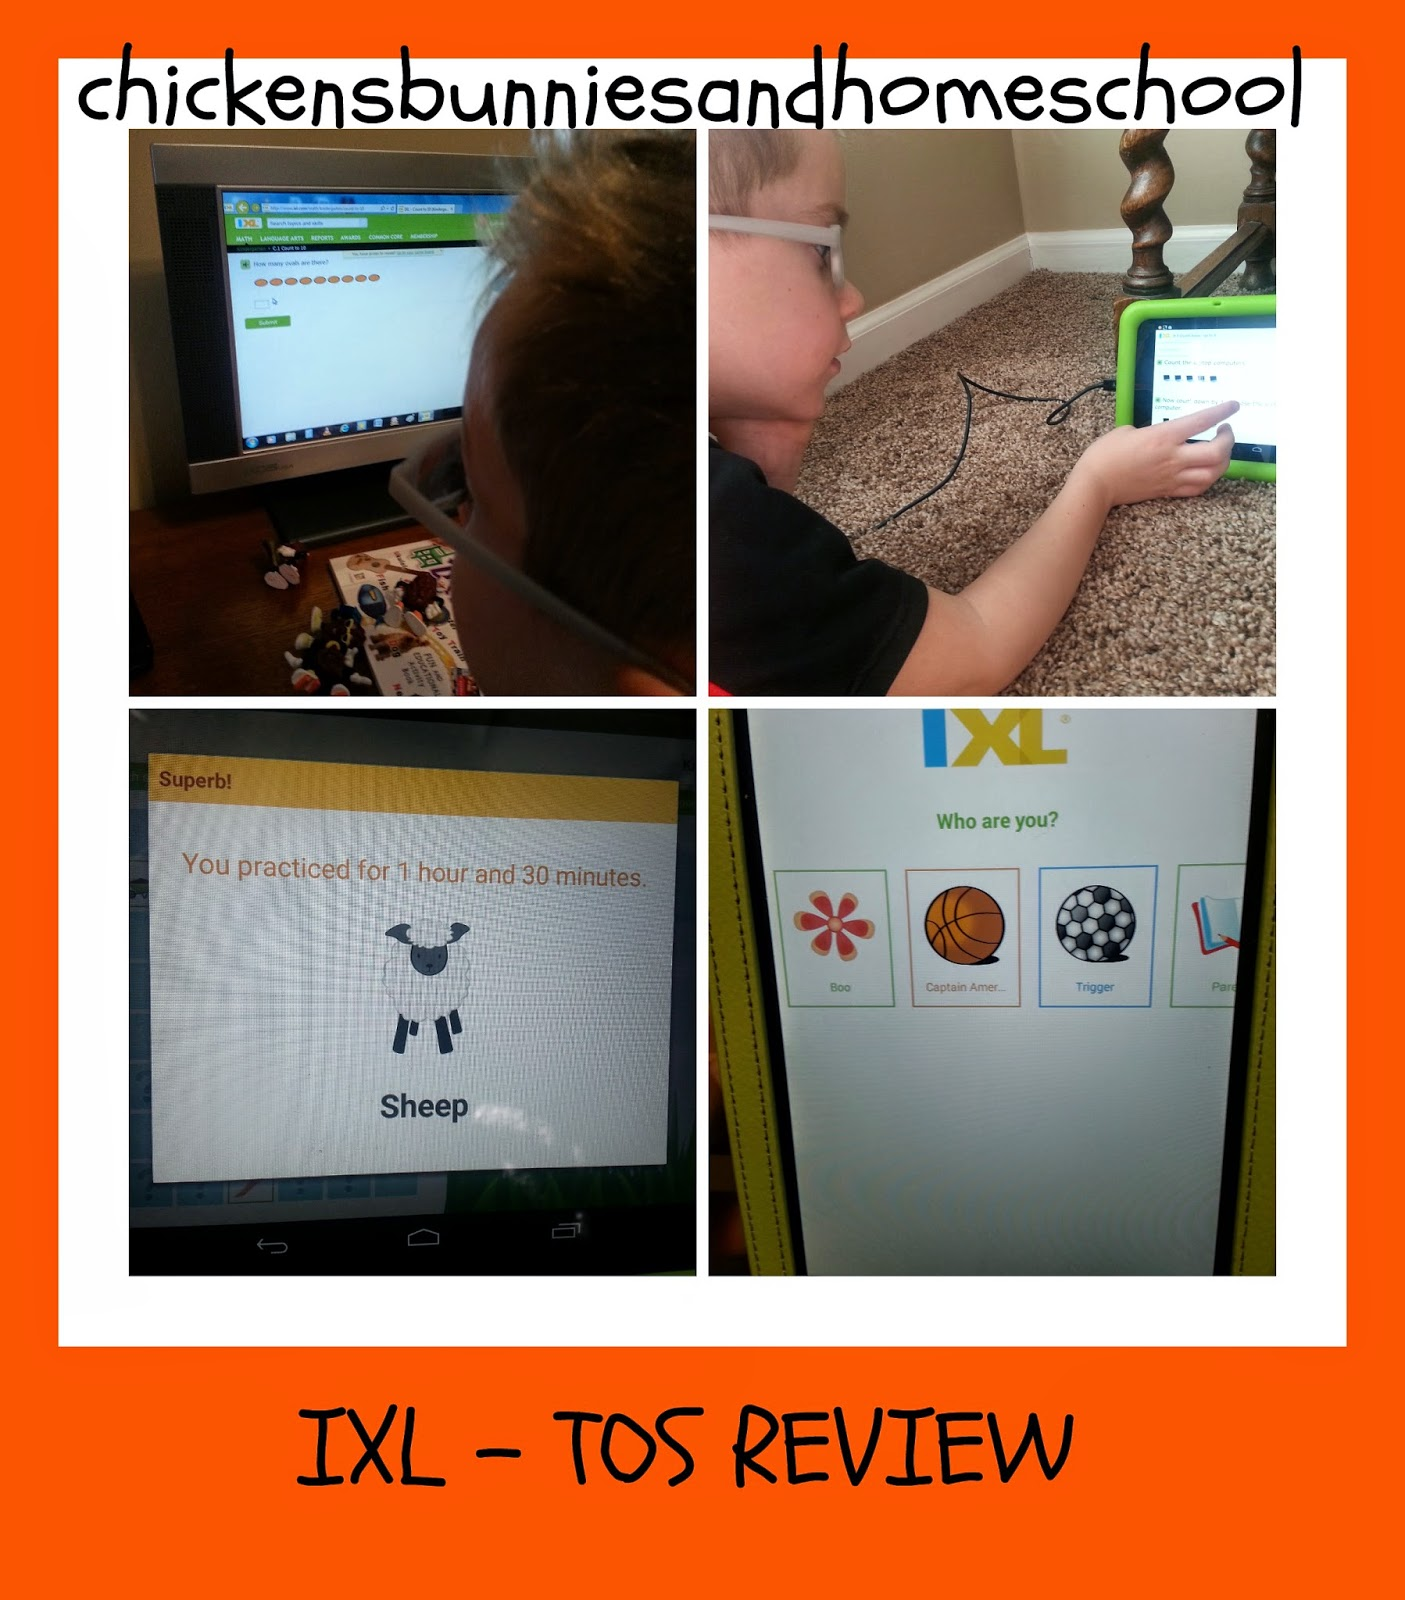 ChickensBunniesandHomeschool : IXL Learning {TOS - REVIEW}